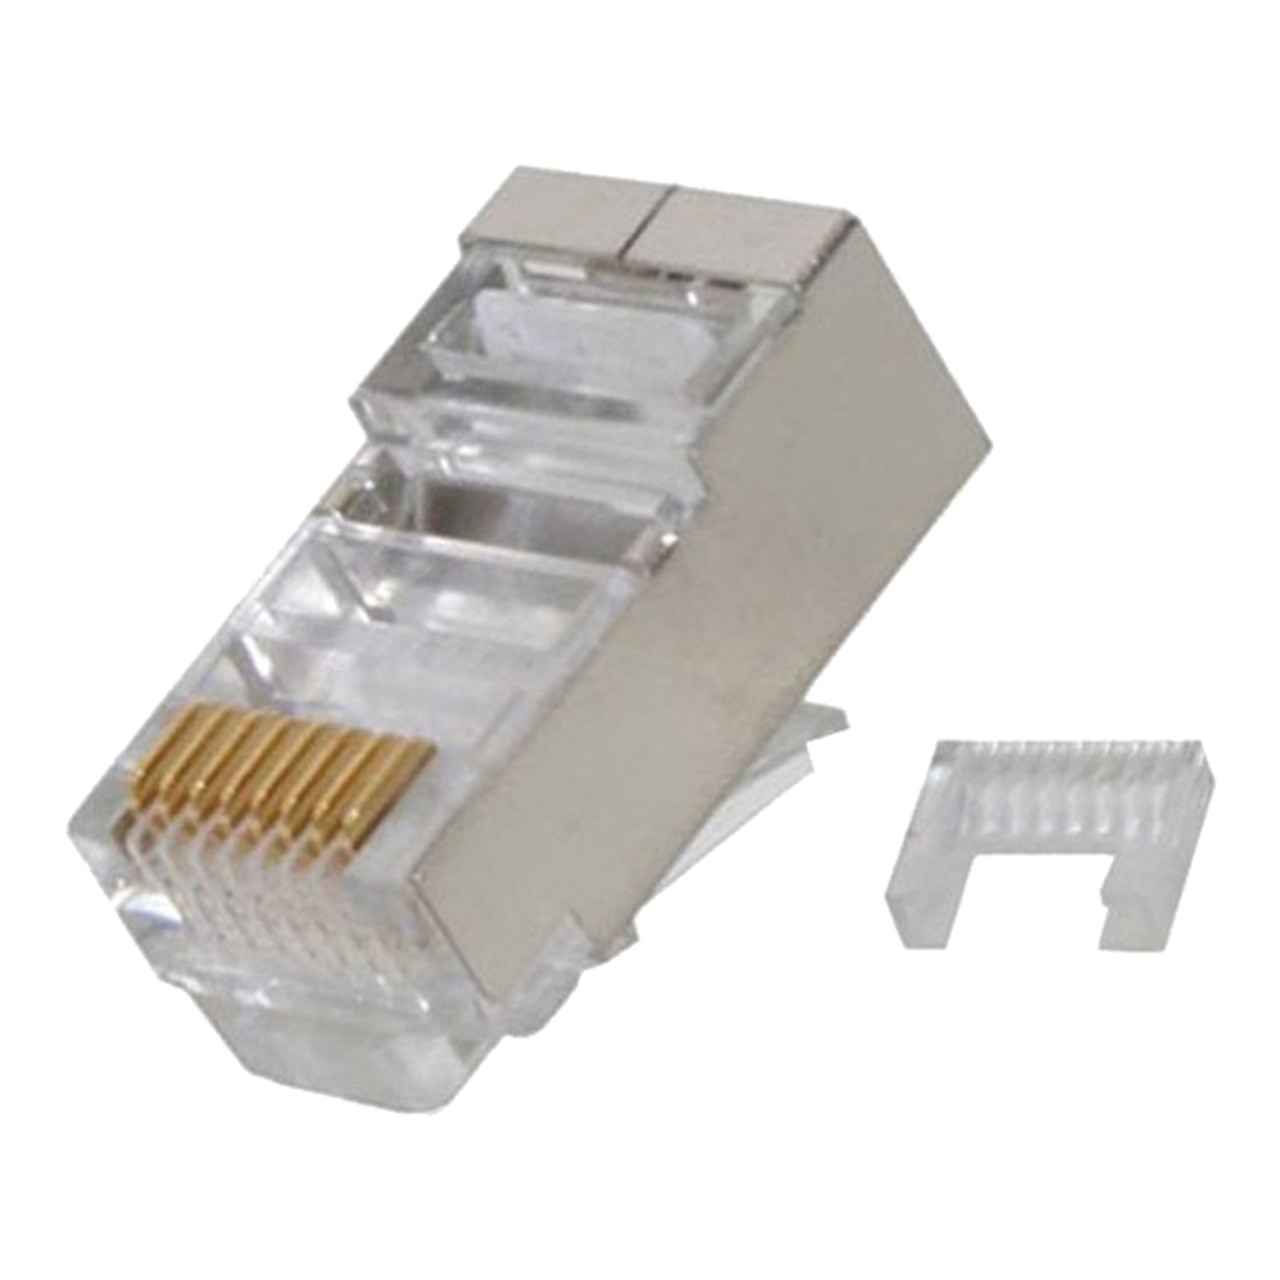 small resolution of quest nmp 8825 modular plugs 100 pack cat6 rj45 shielded 8p8c